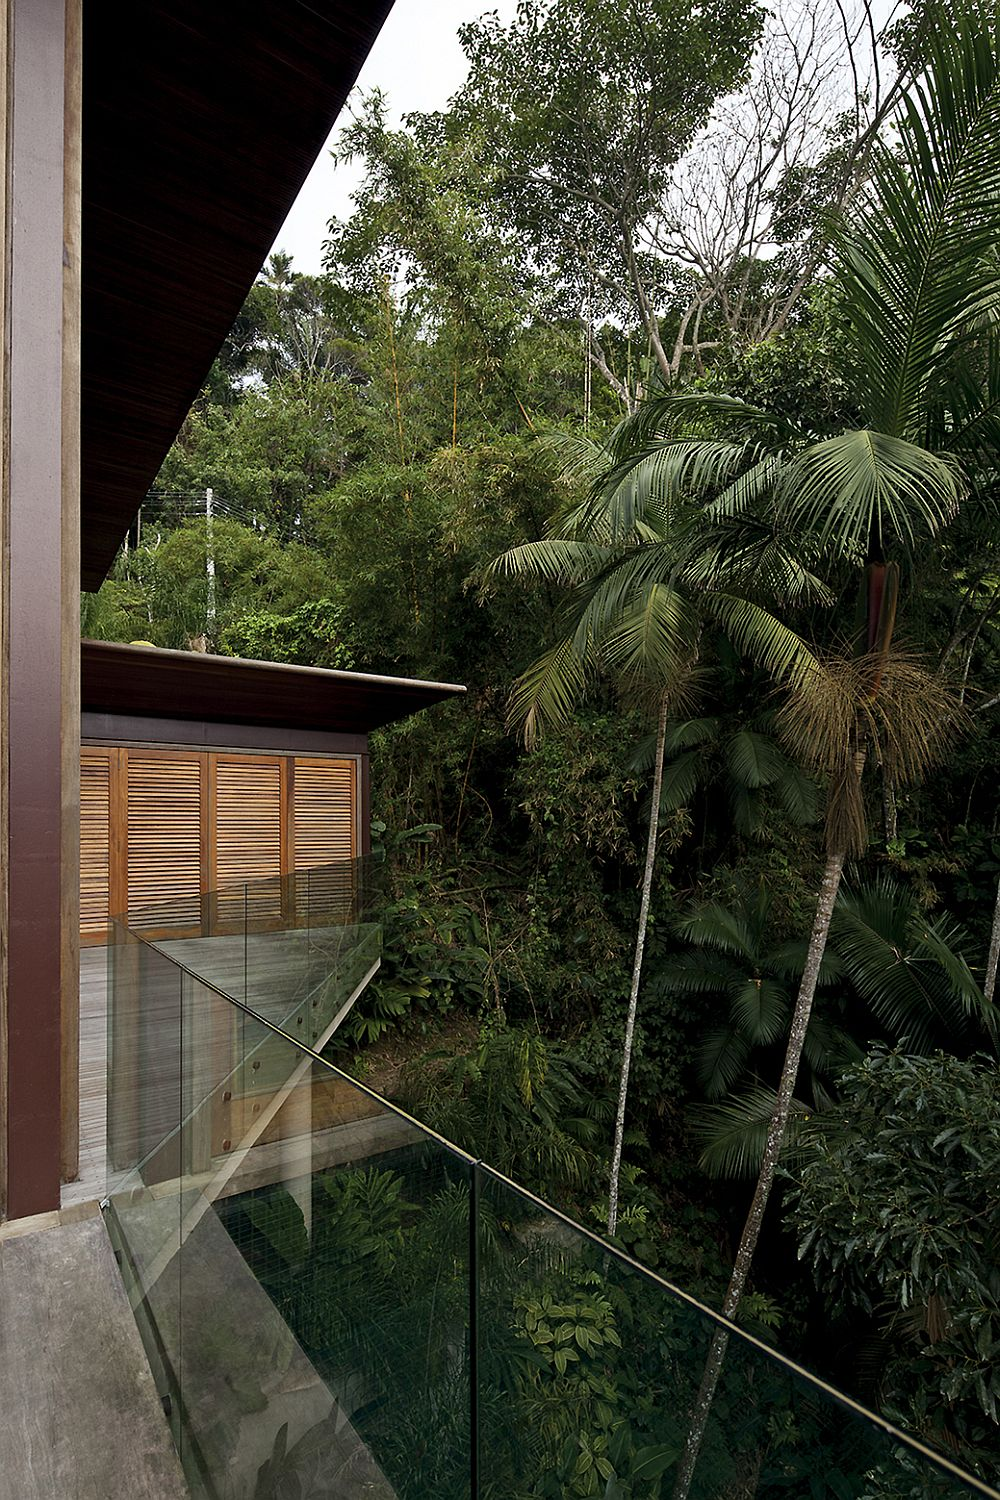 Balcony around the house overlooking the canopy